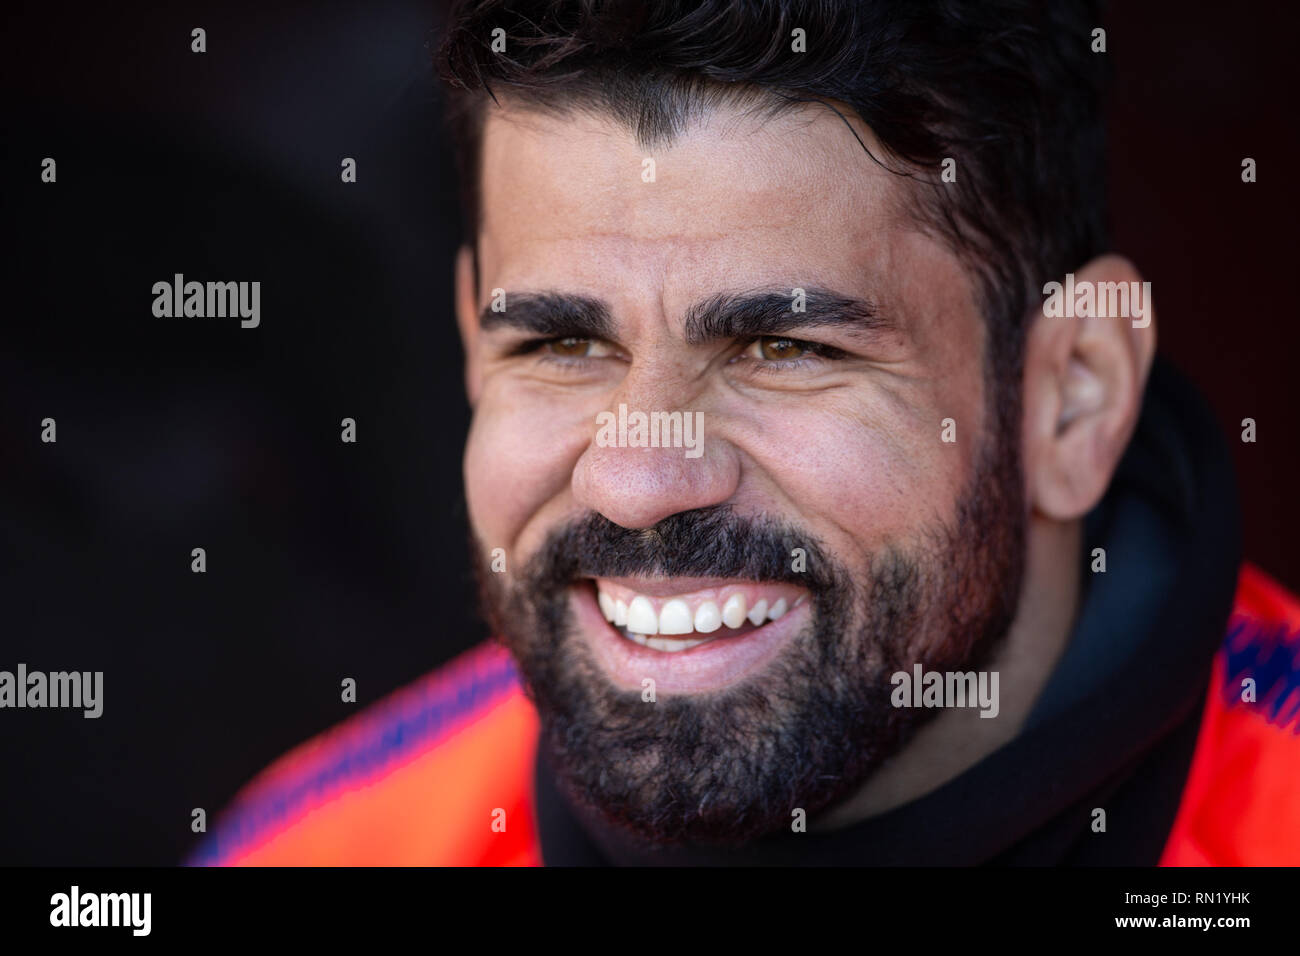 Diego Costa of Atletico Madrid during the match between Rayo Vallecano vs Atletico Madrid of La Liga, date 24, 2018-2019 season. Stadium of Vallecas,  Madrid, Spain - 16  FEB 2019. - Stock Image